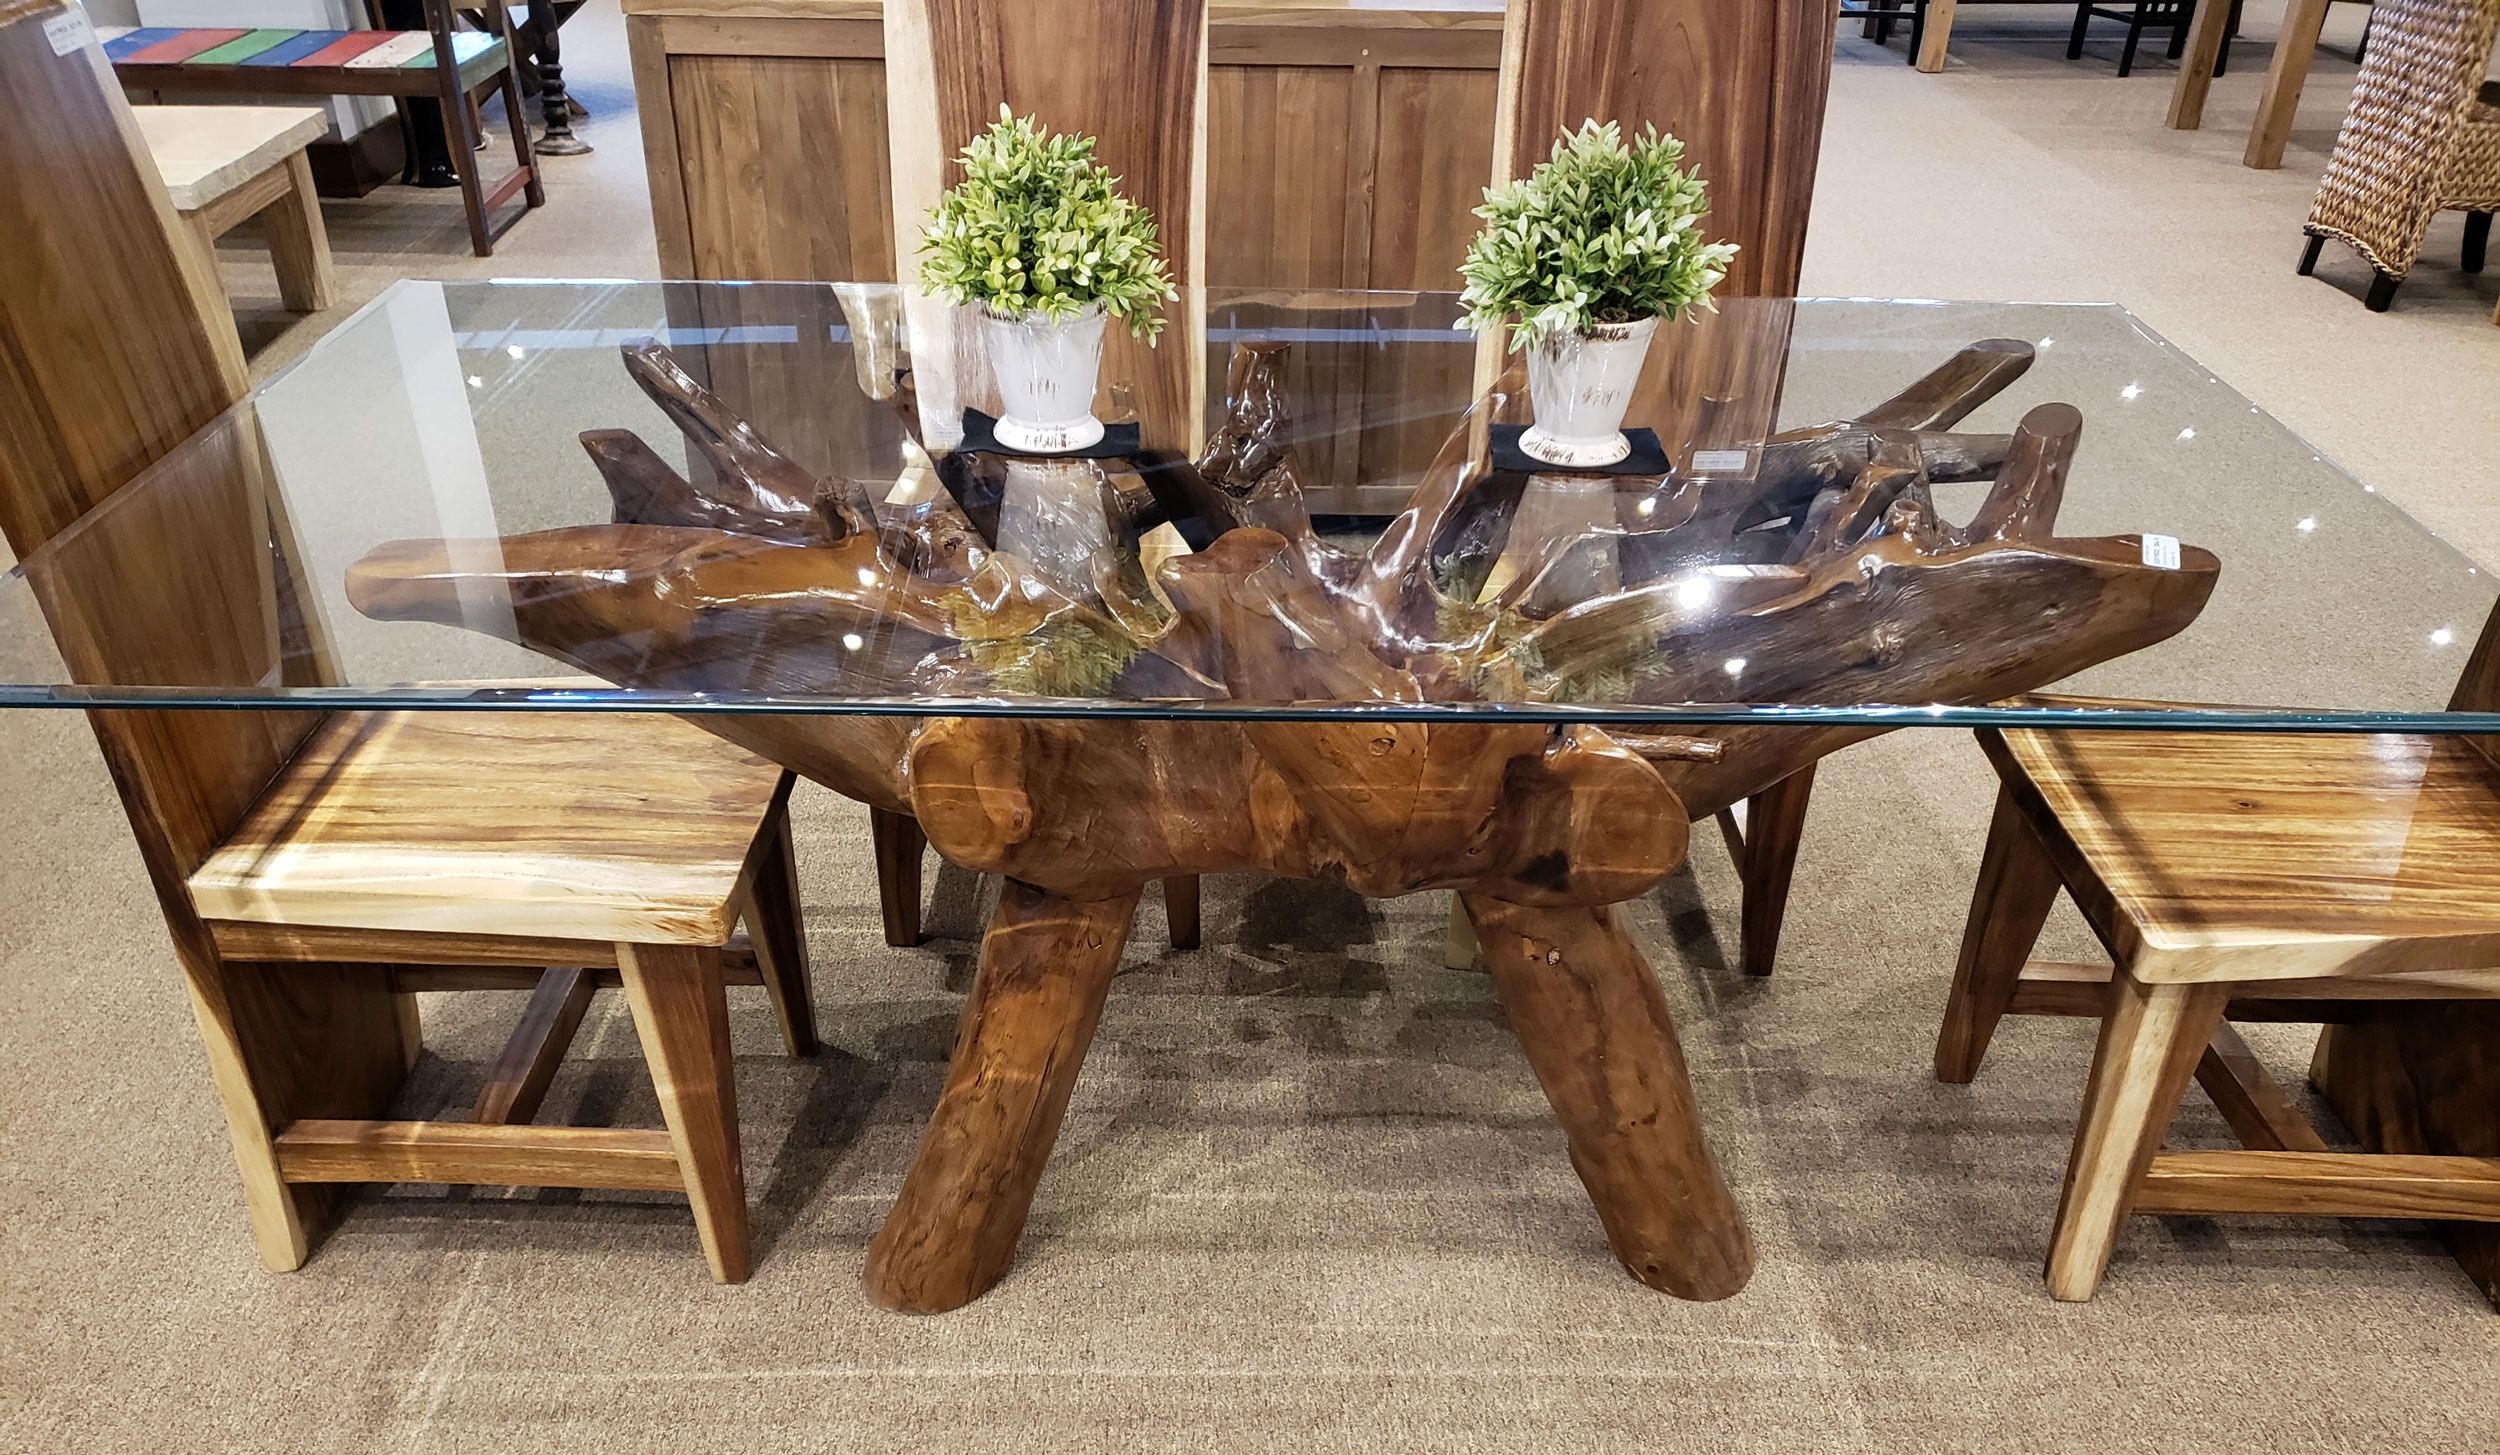 Teak Wood Root Dining Table Including A 71 X 40 Inch Glass Top Teak Wood Furniture Wood Furniture Furniture